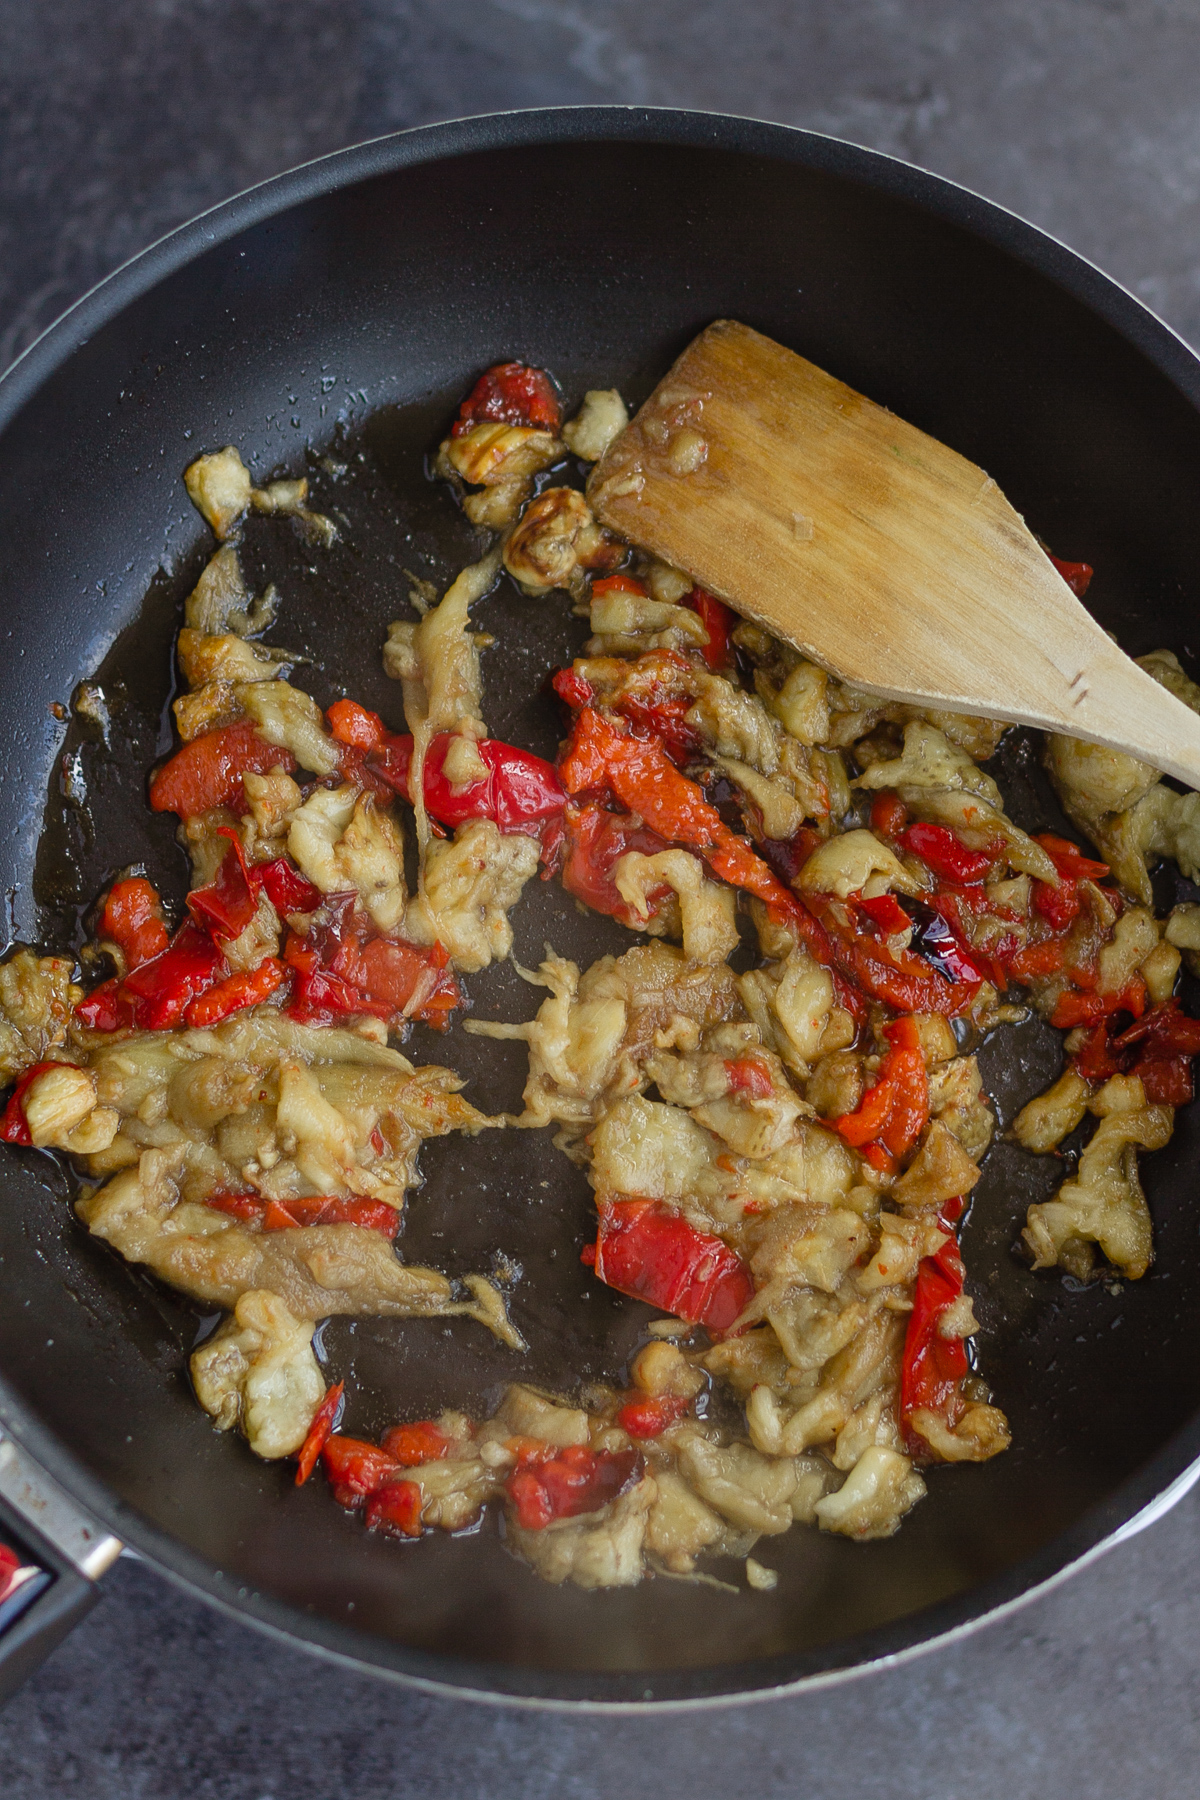 frying the roasted aubergine and red pepper